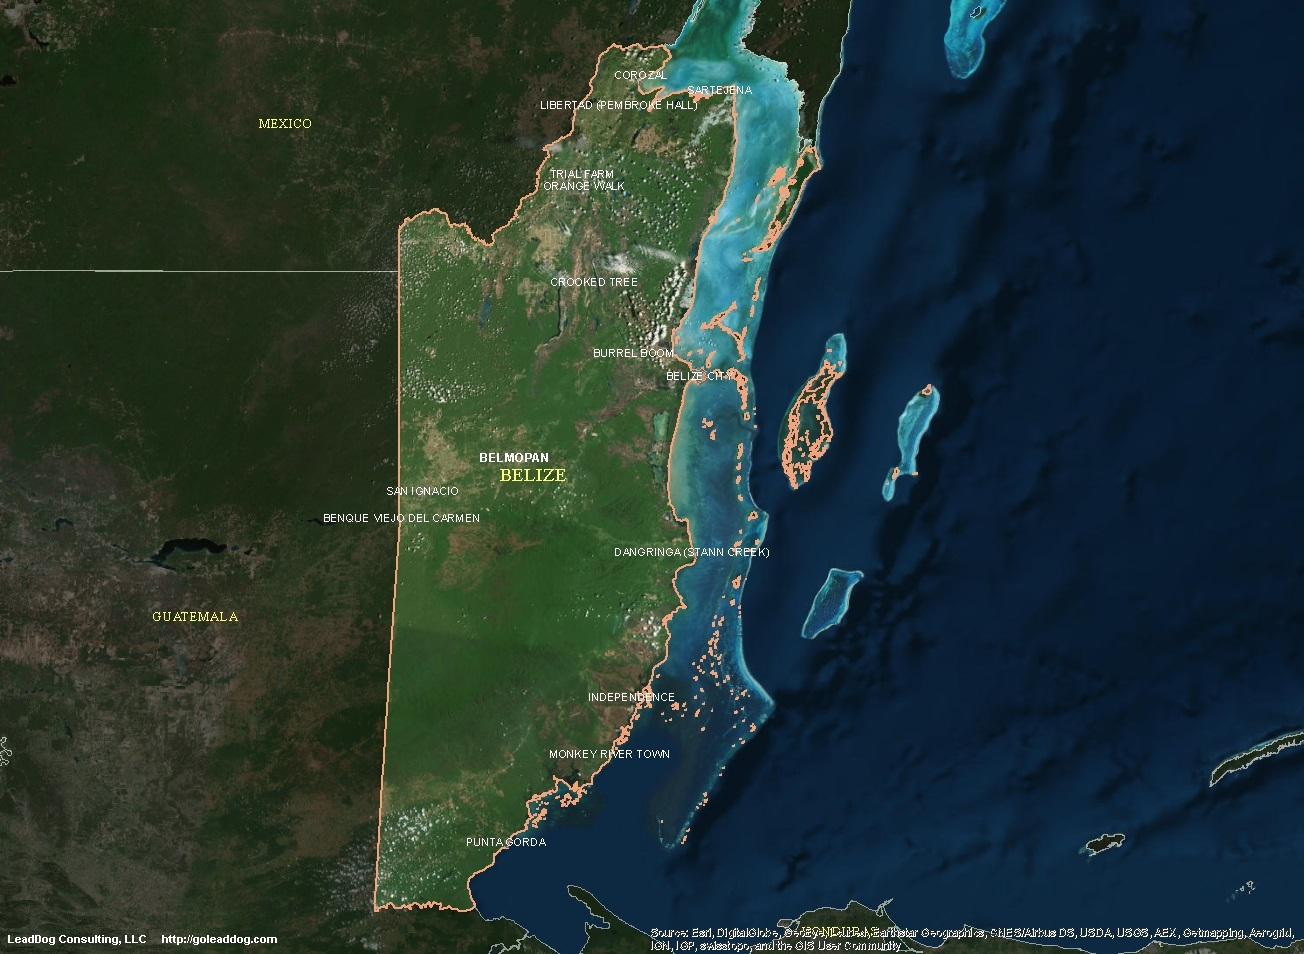 Belize Satellite Maps LeadDog Consulting - Belize map belmopan